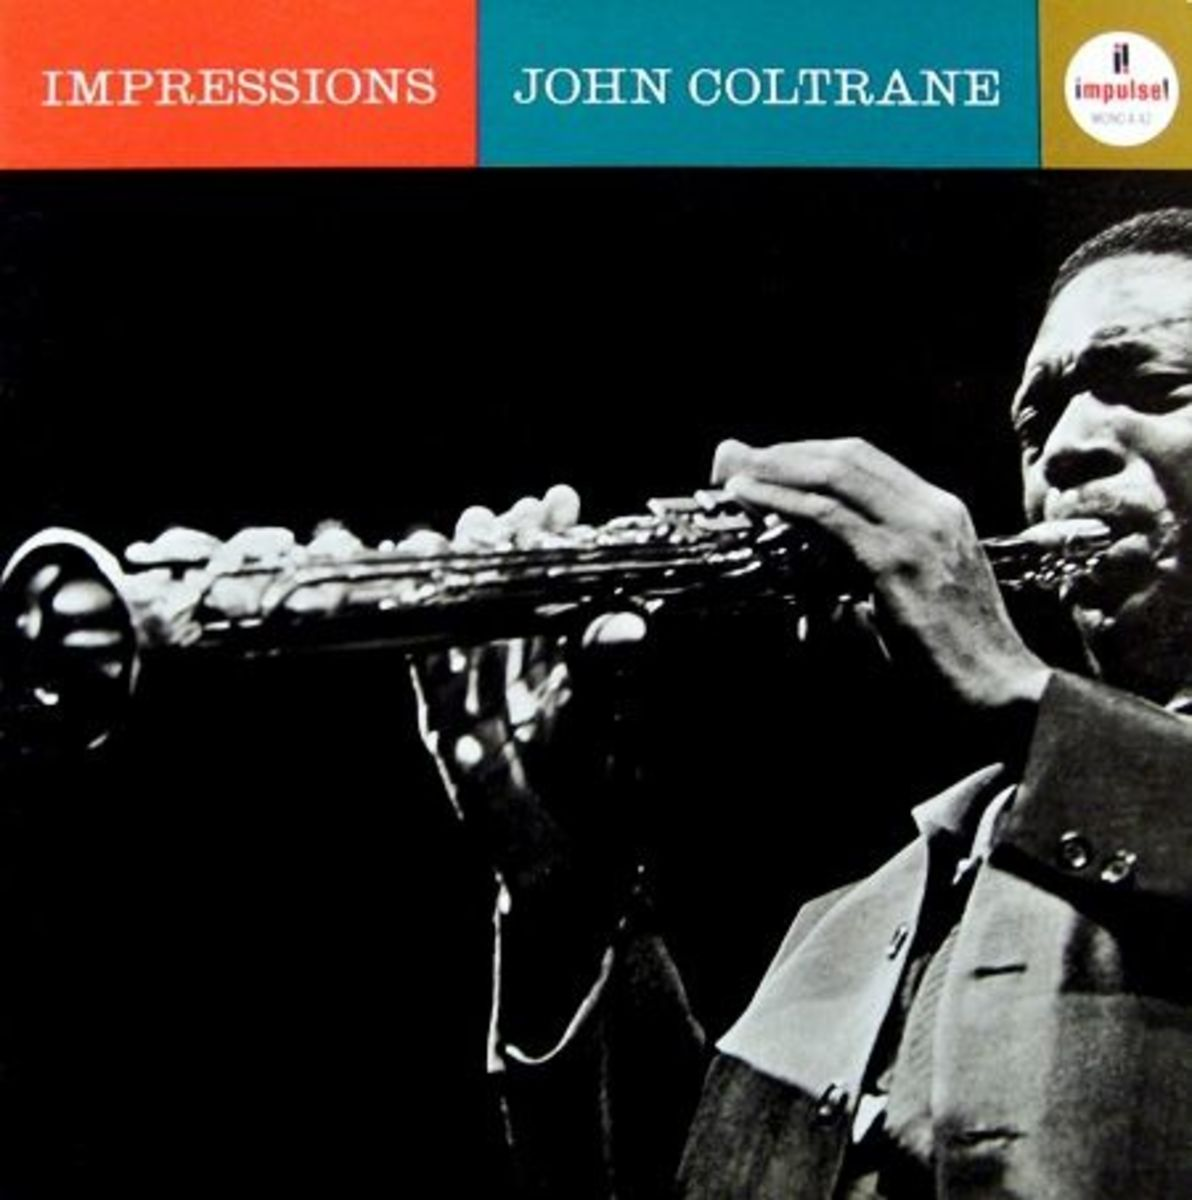 "1963 John Coltrane ""Impressions""  Impulse Records A-42 12"" LP Vinyl Record (1963) Album Cover Design by Robert Flynn, Photo by Joe Alper"